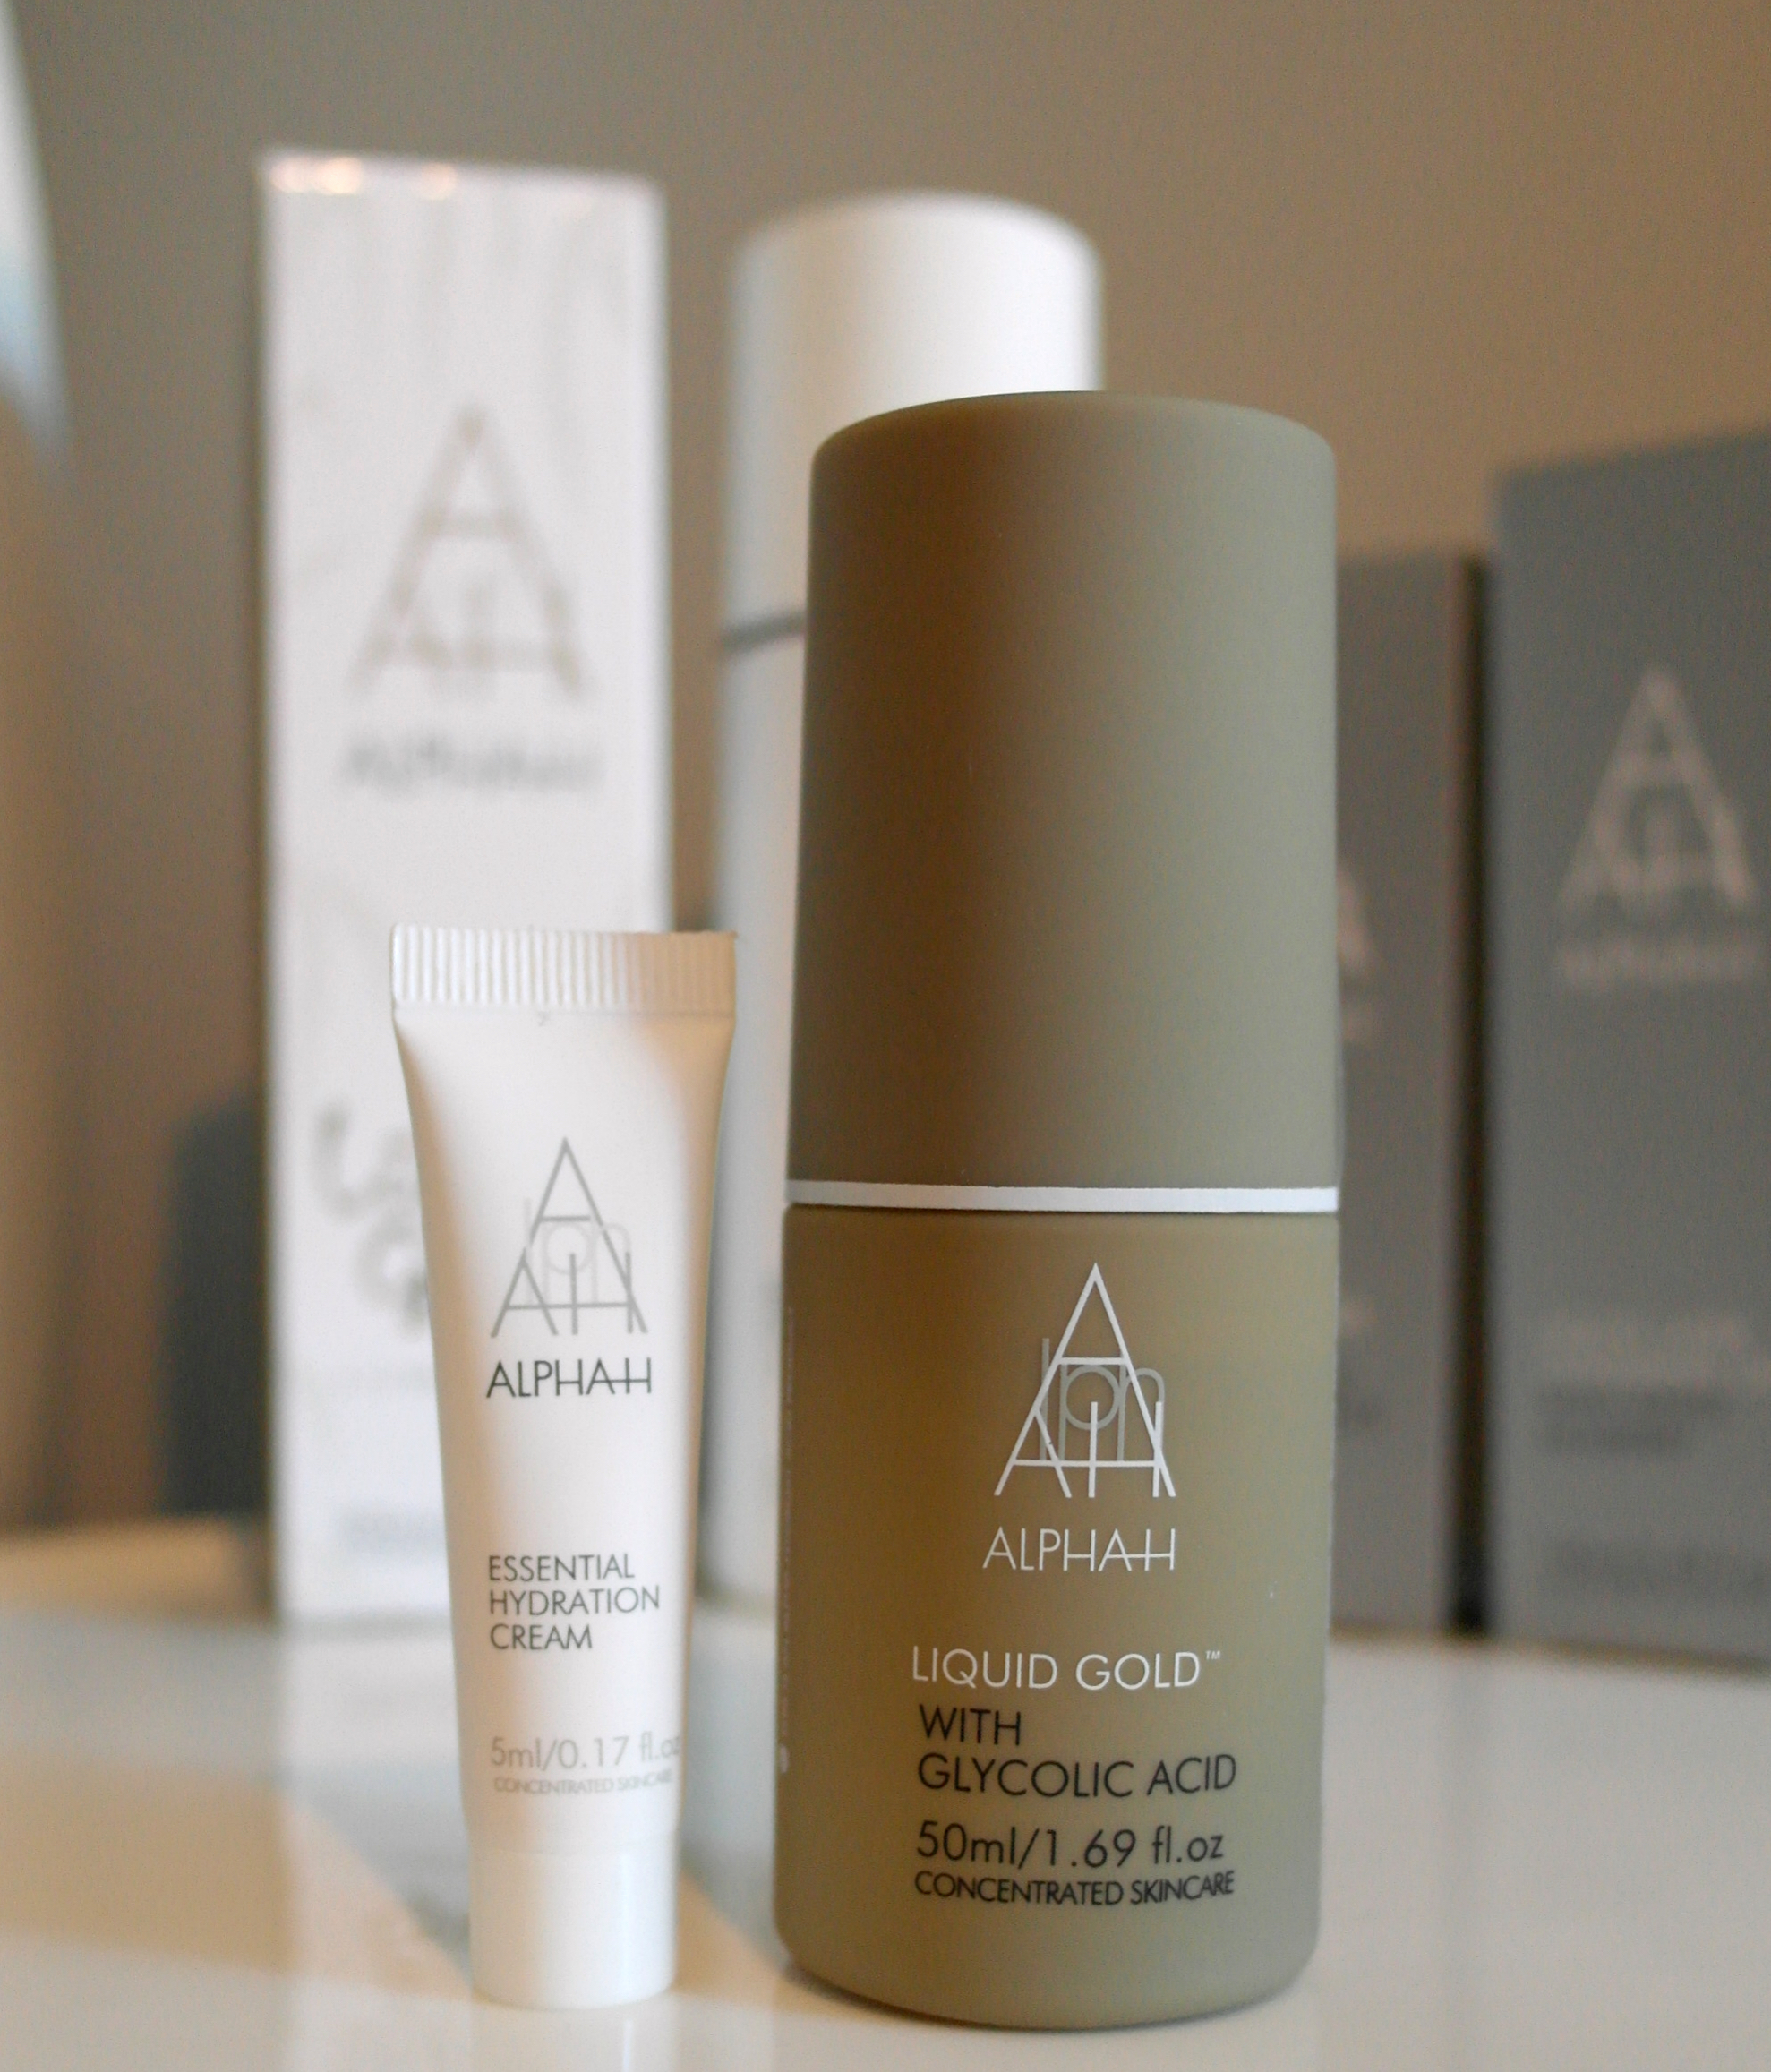 Alpha H Freebies - Essential Hydration Cream & 50ml Liquid Gold